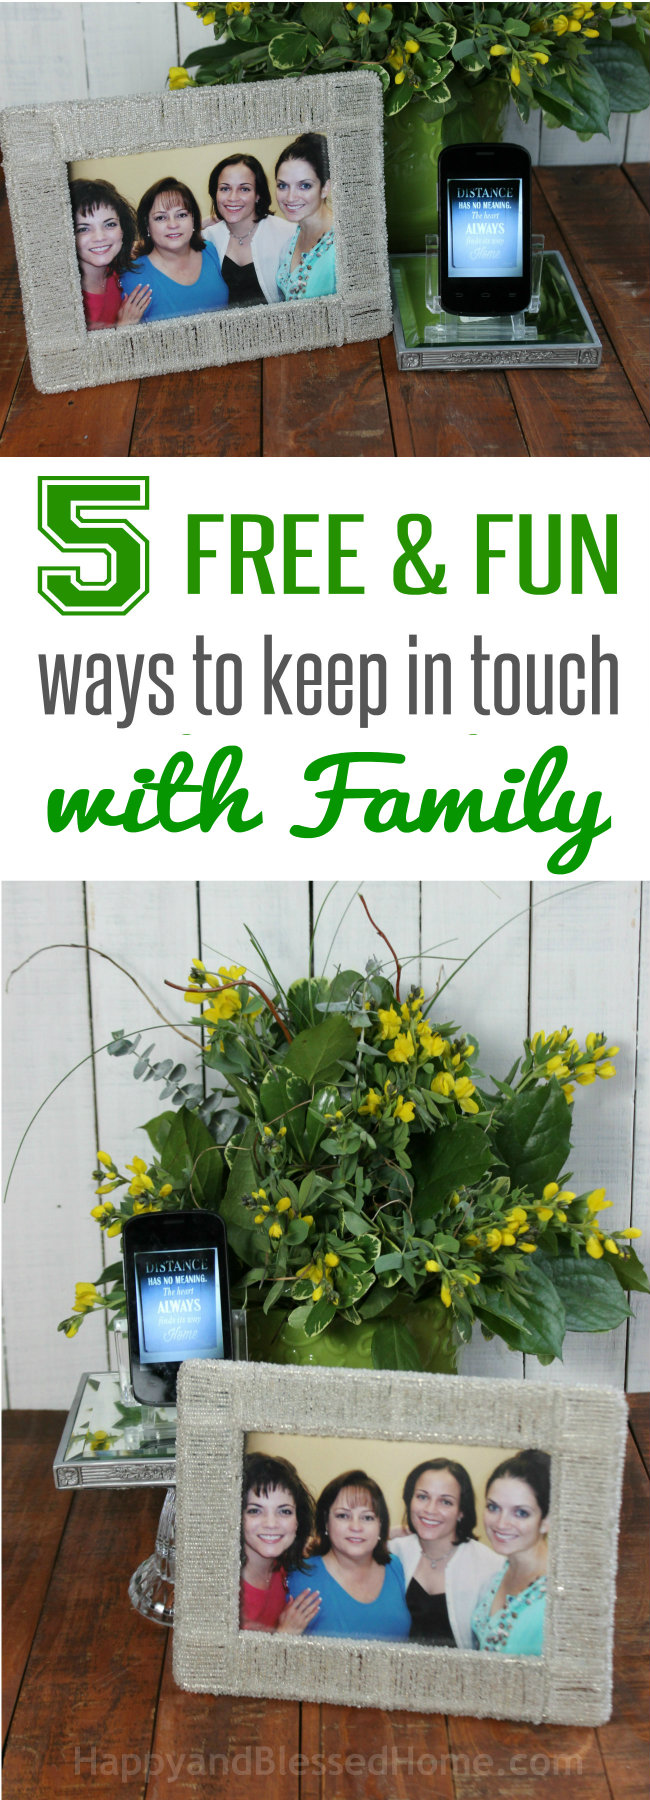 5 Free and Fun Ways to keepin touch with Family from HappyandBlessedHome